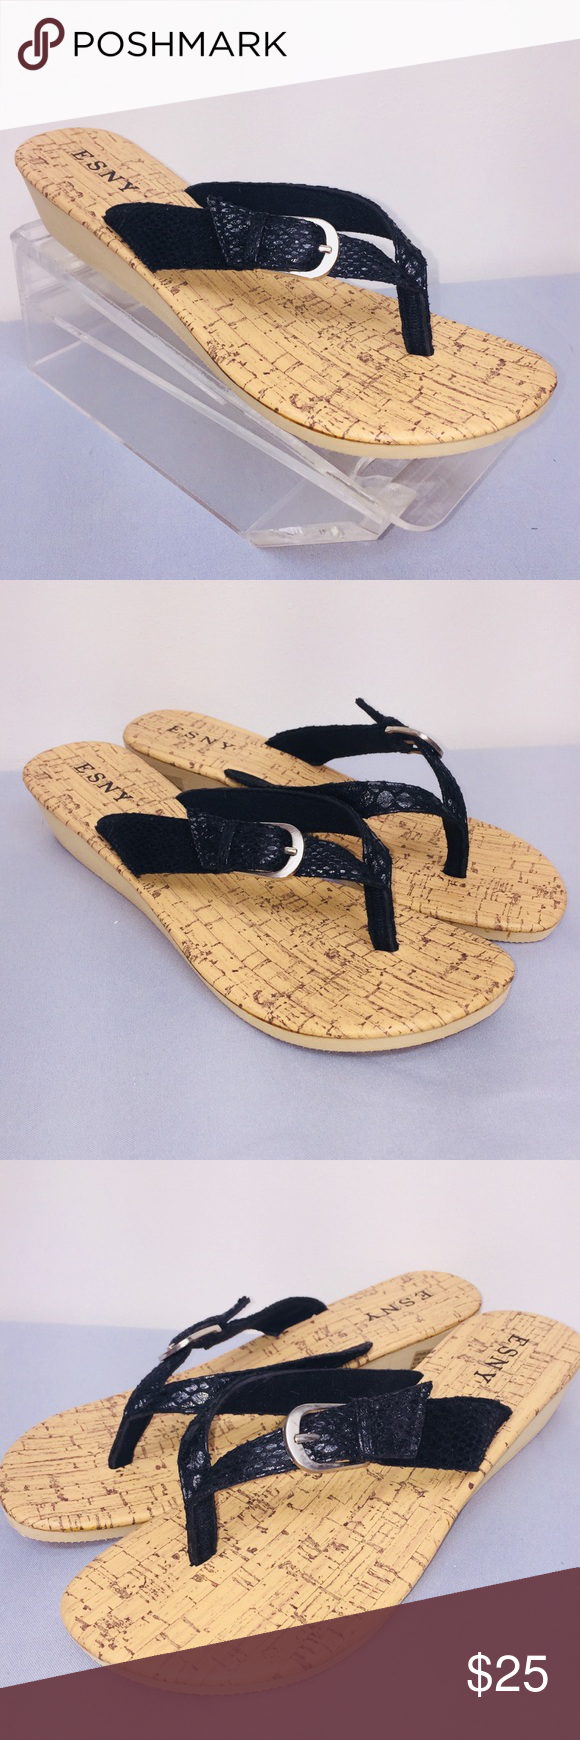 fe803b0b8d772 ESNY sandals wedge thongs NEW black Sz 10